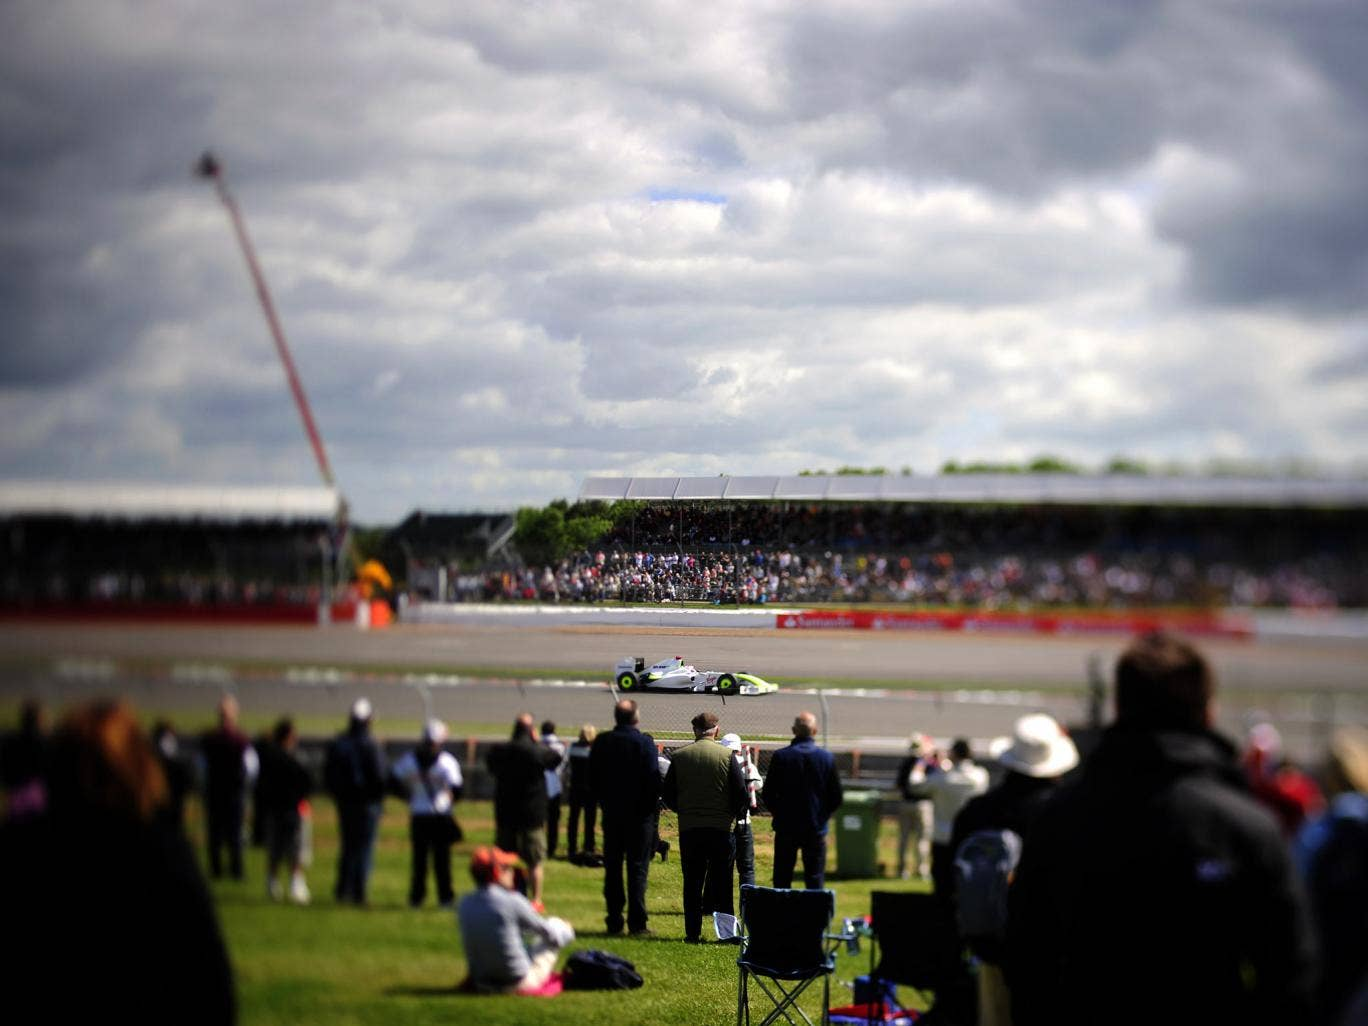 A view of the track at Silverstone